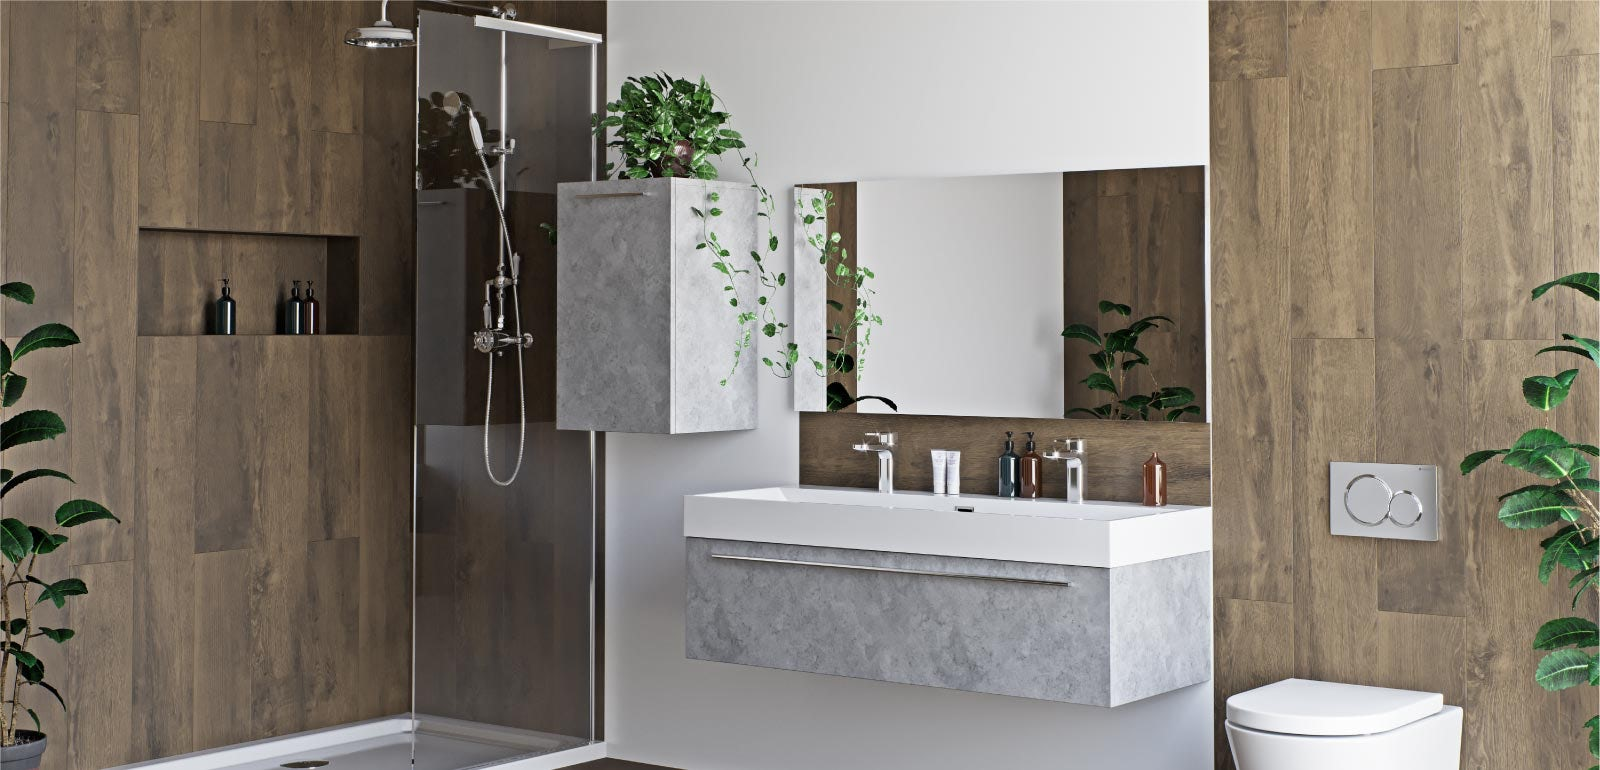 7 Contemporary Bathroom Ideas For 2020 And Beyond Victoriaplum Com